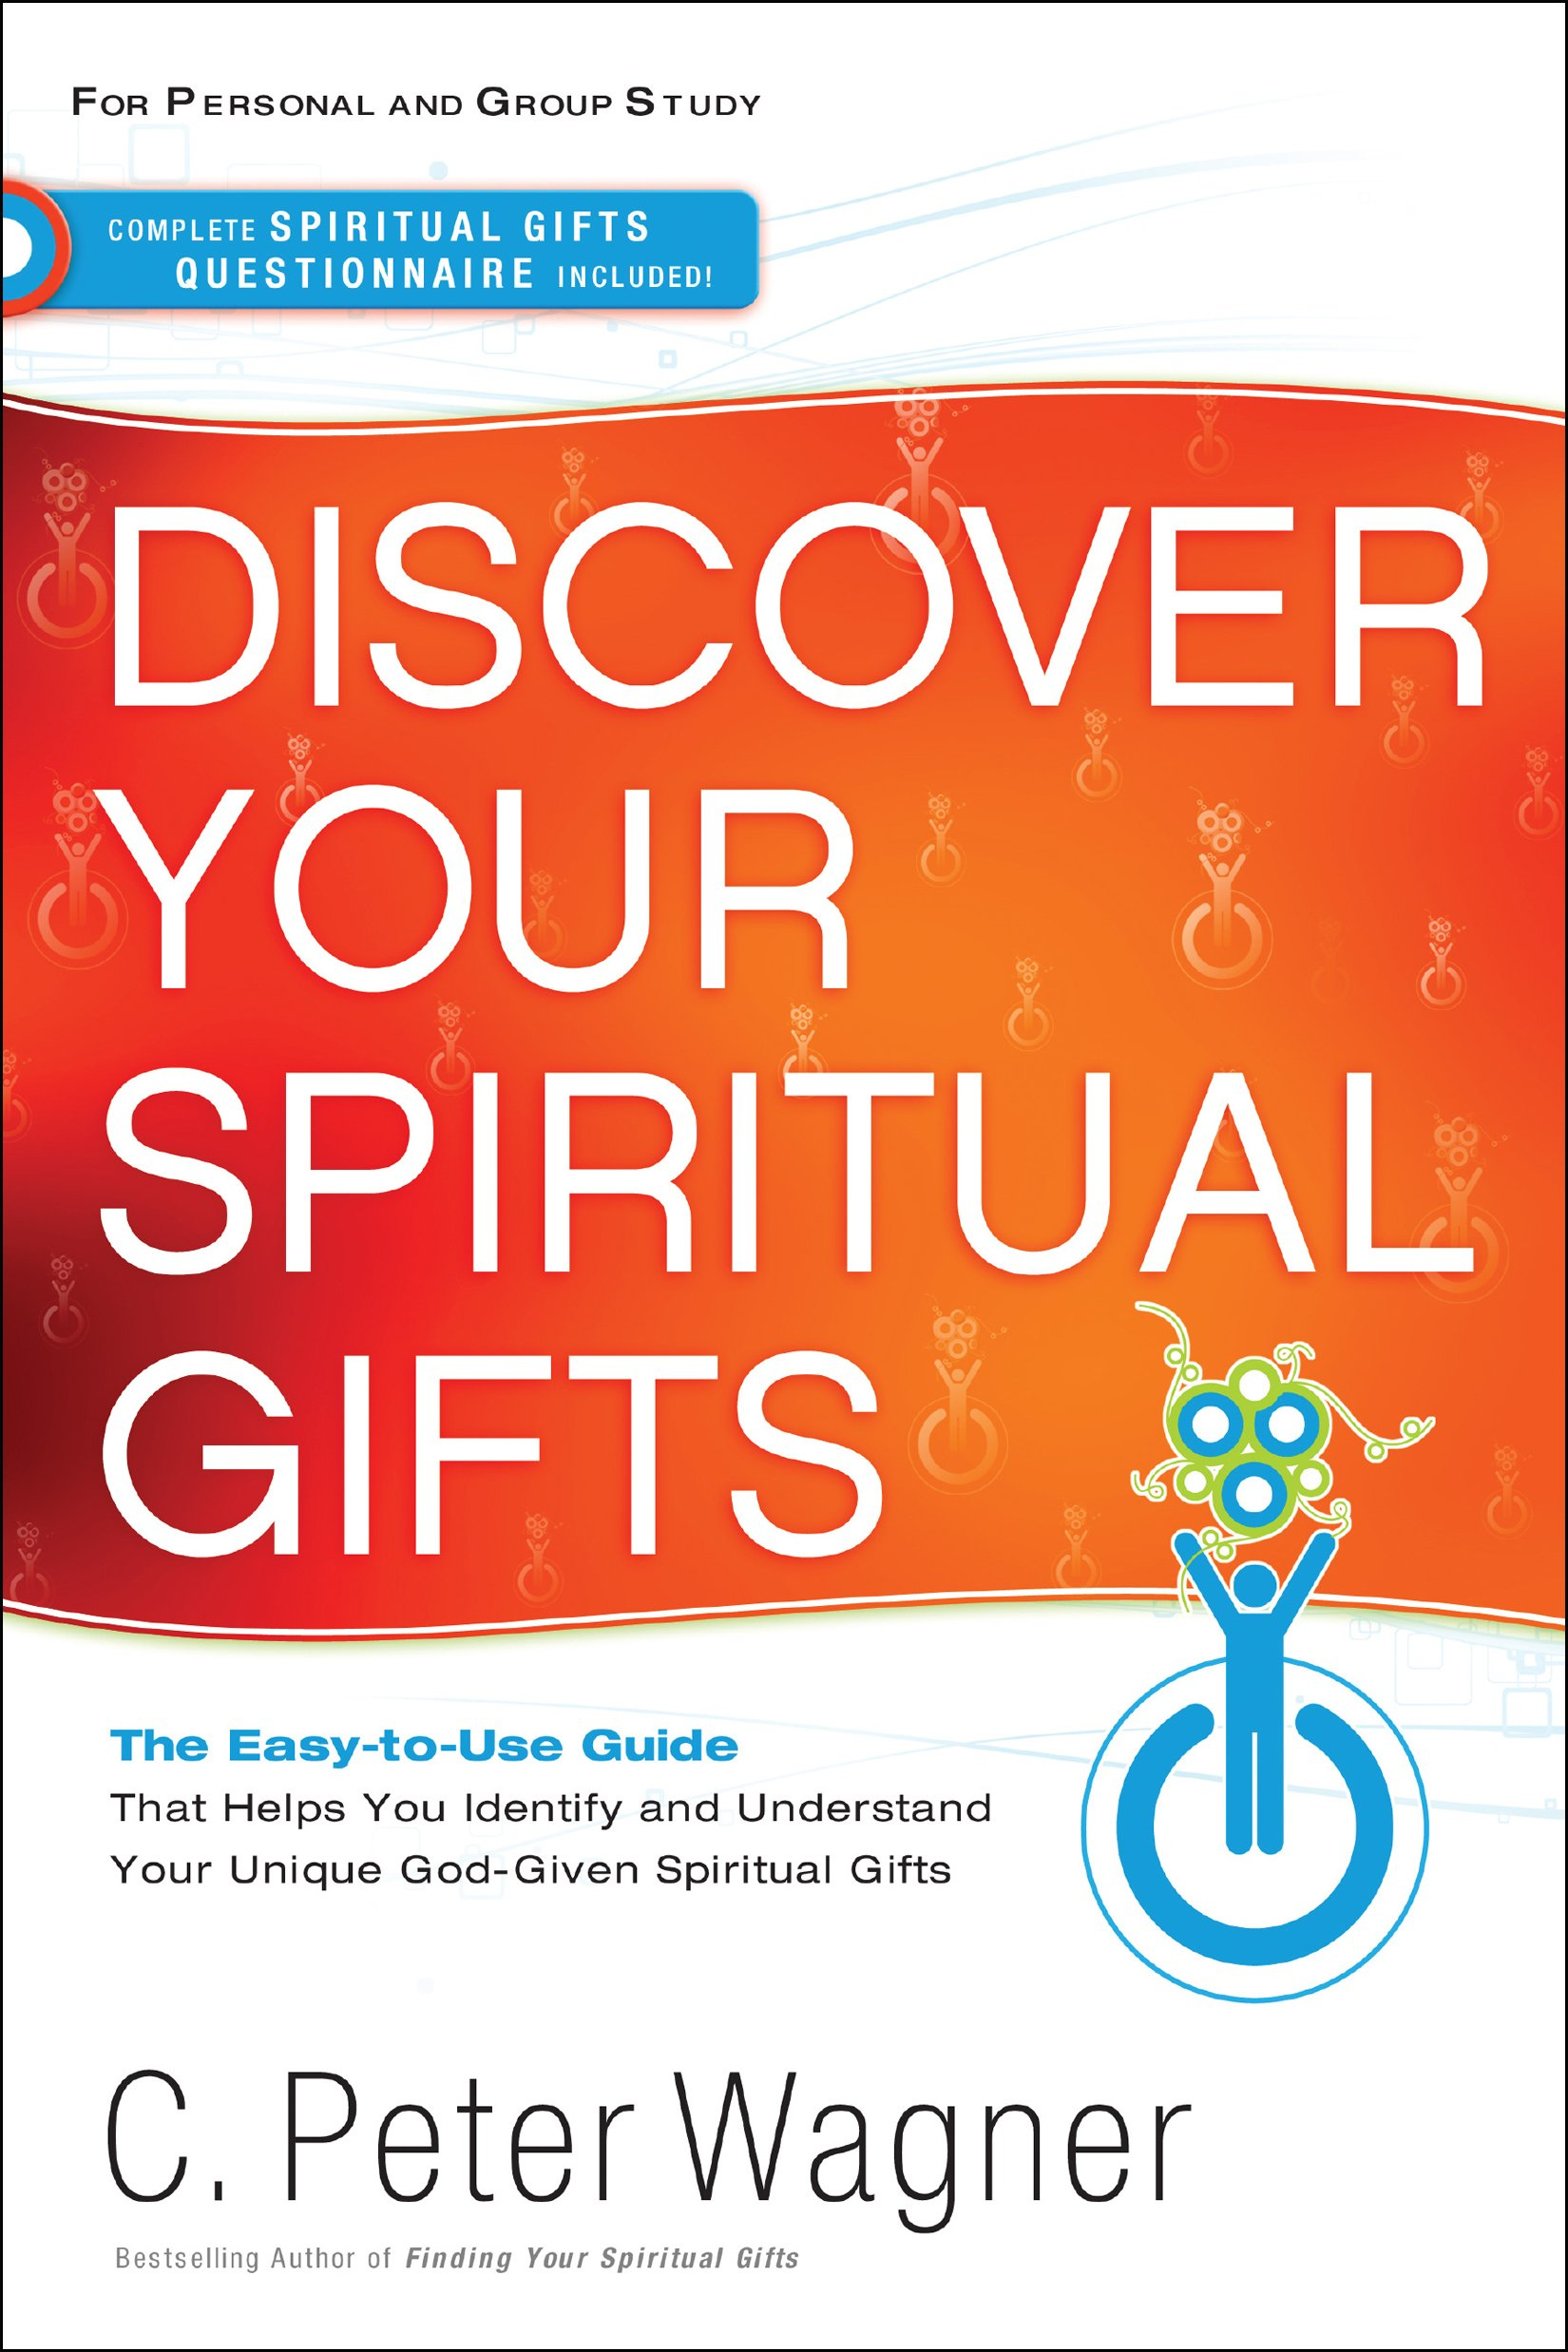 Discover your spiritual gifts c peter wagner 9780800797393 discover your spiritual gifts c peter wagner 9780800797393 amazon books negle Choice Image